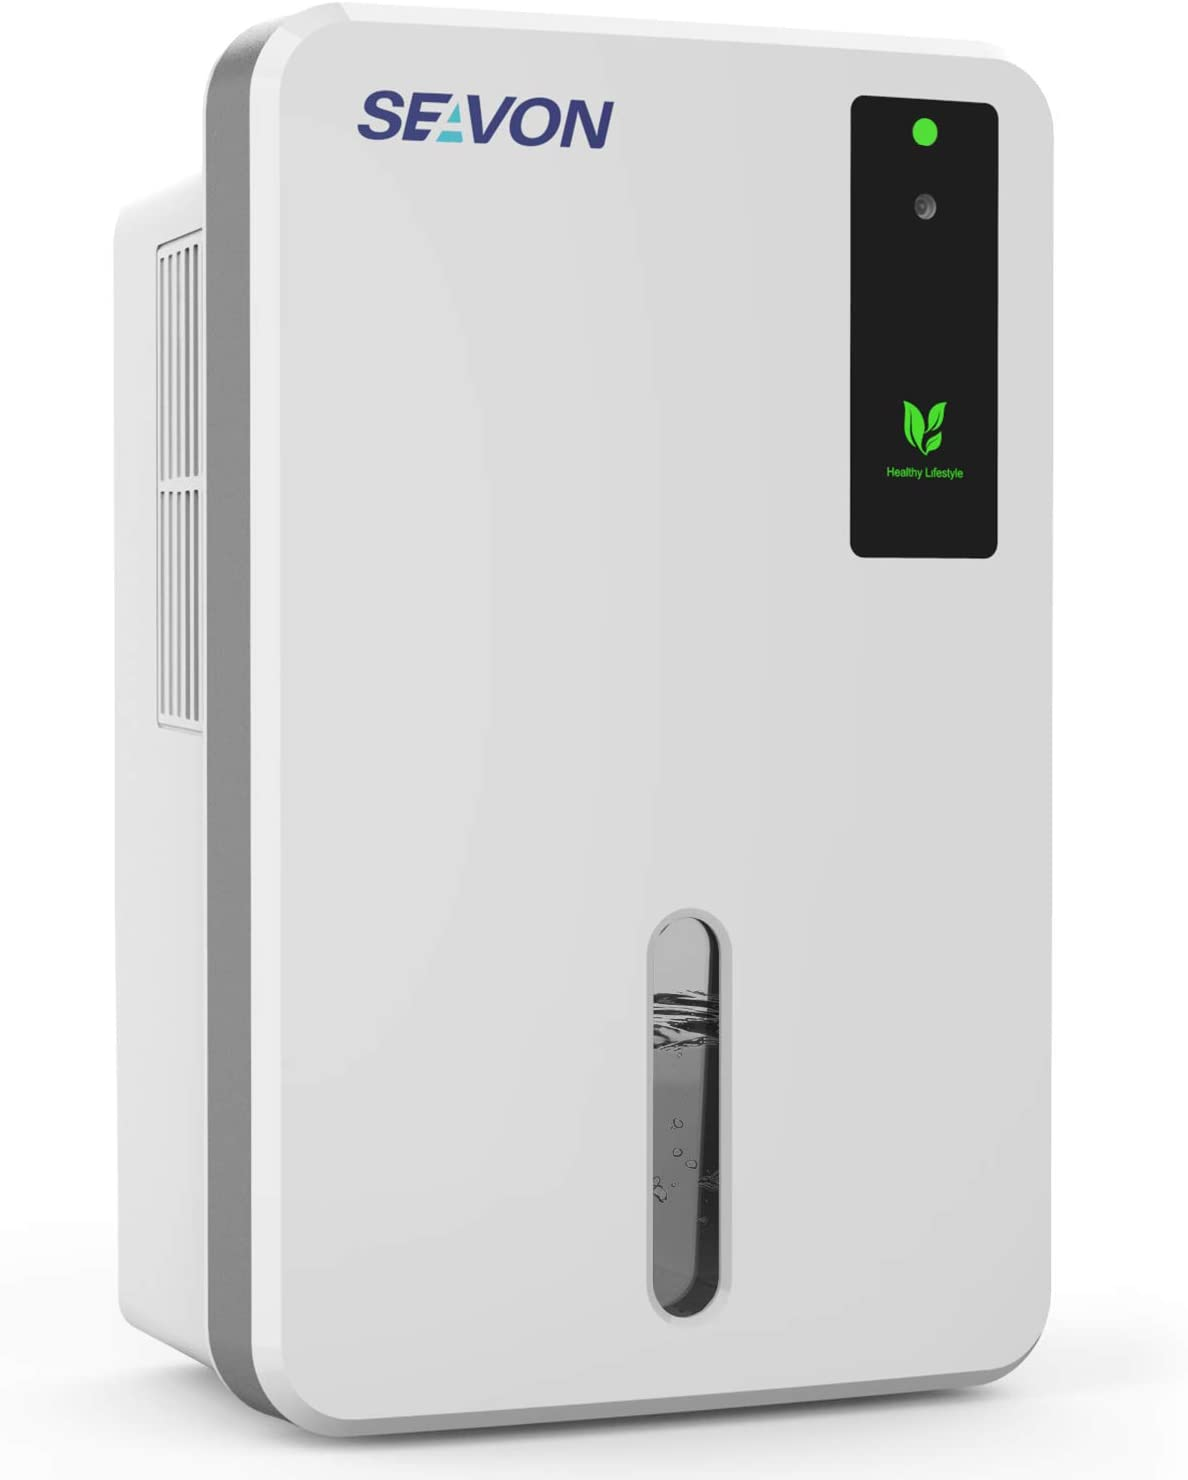 SEAVON Dehumidifiers for 2021 autumn and winter new home 2800 Max 50% OFF Cubic 269 Feet sq. ft Quie